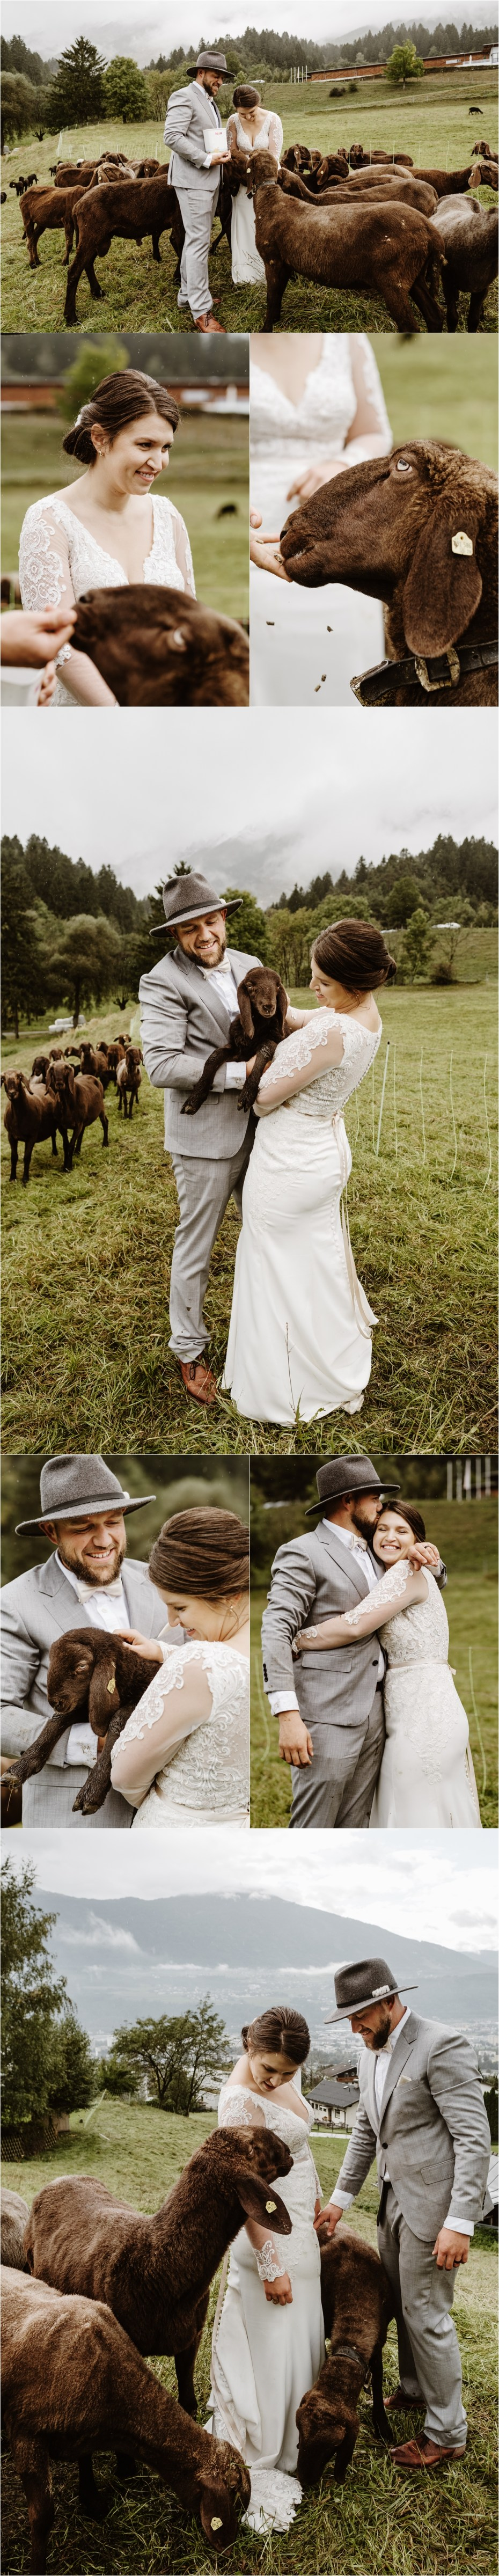 Bride and groom visit a sheep farm on their wedding day in Austria. Photos by Wild Connections Photography